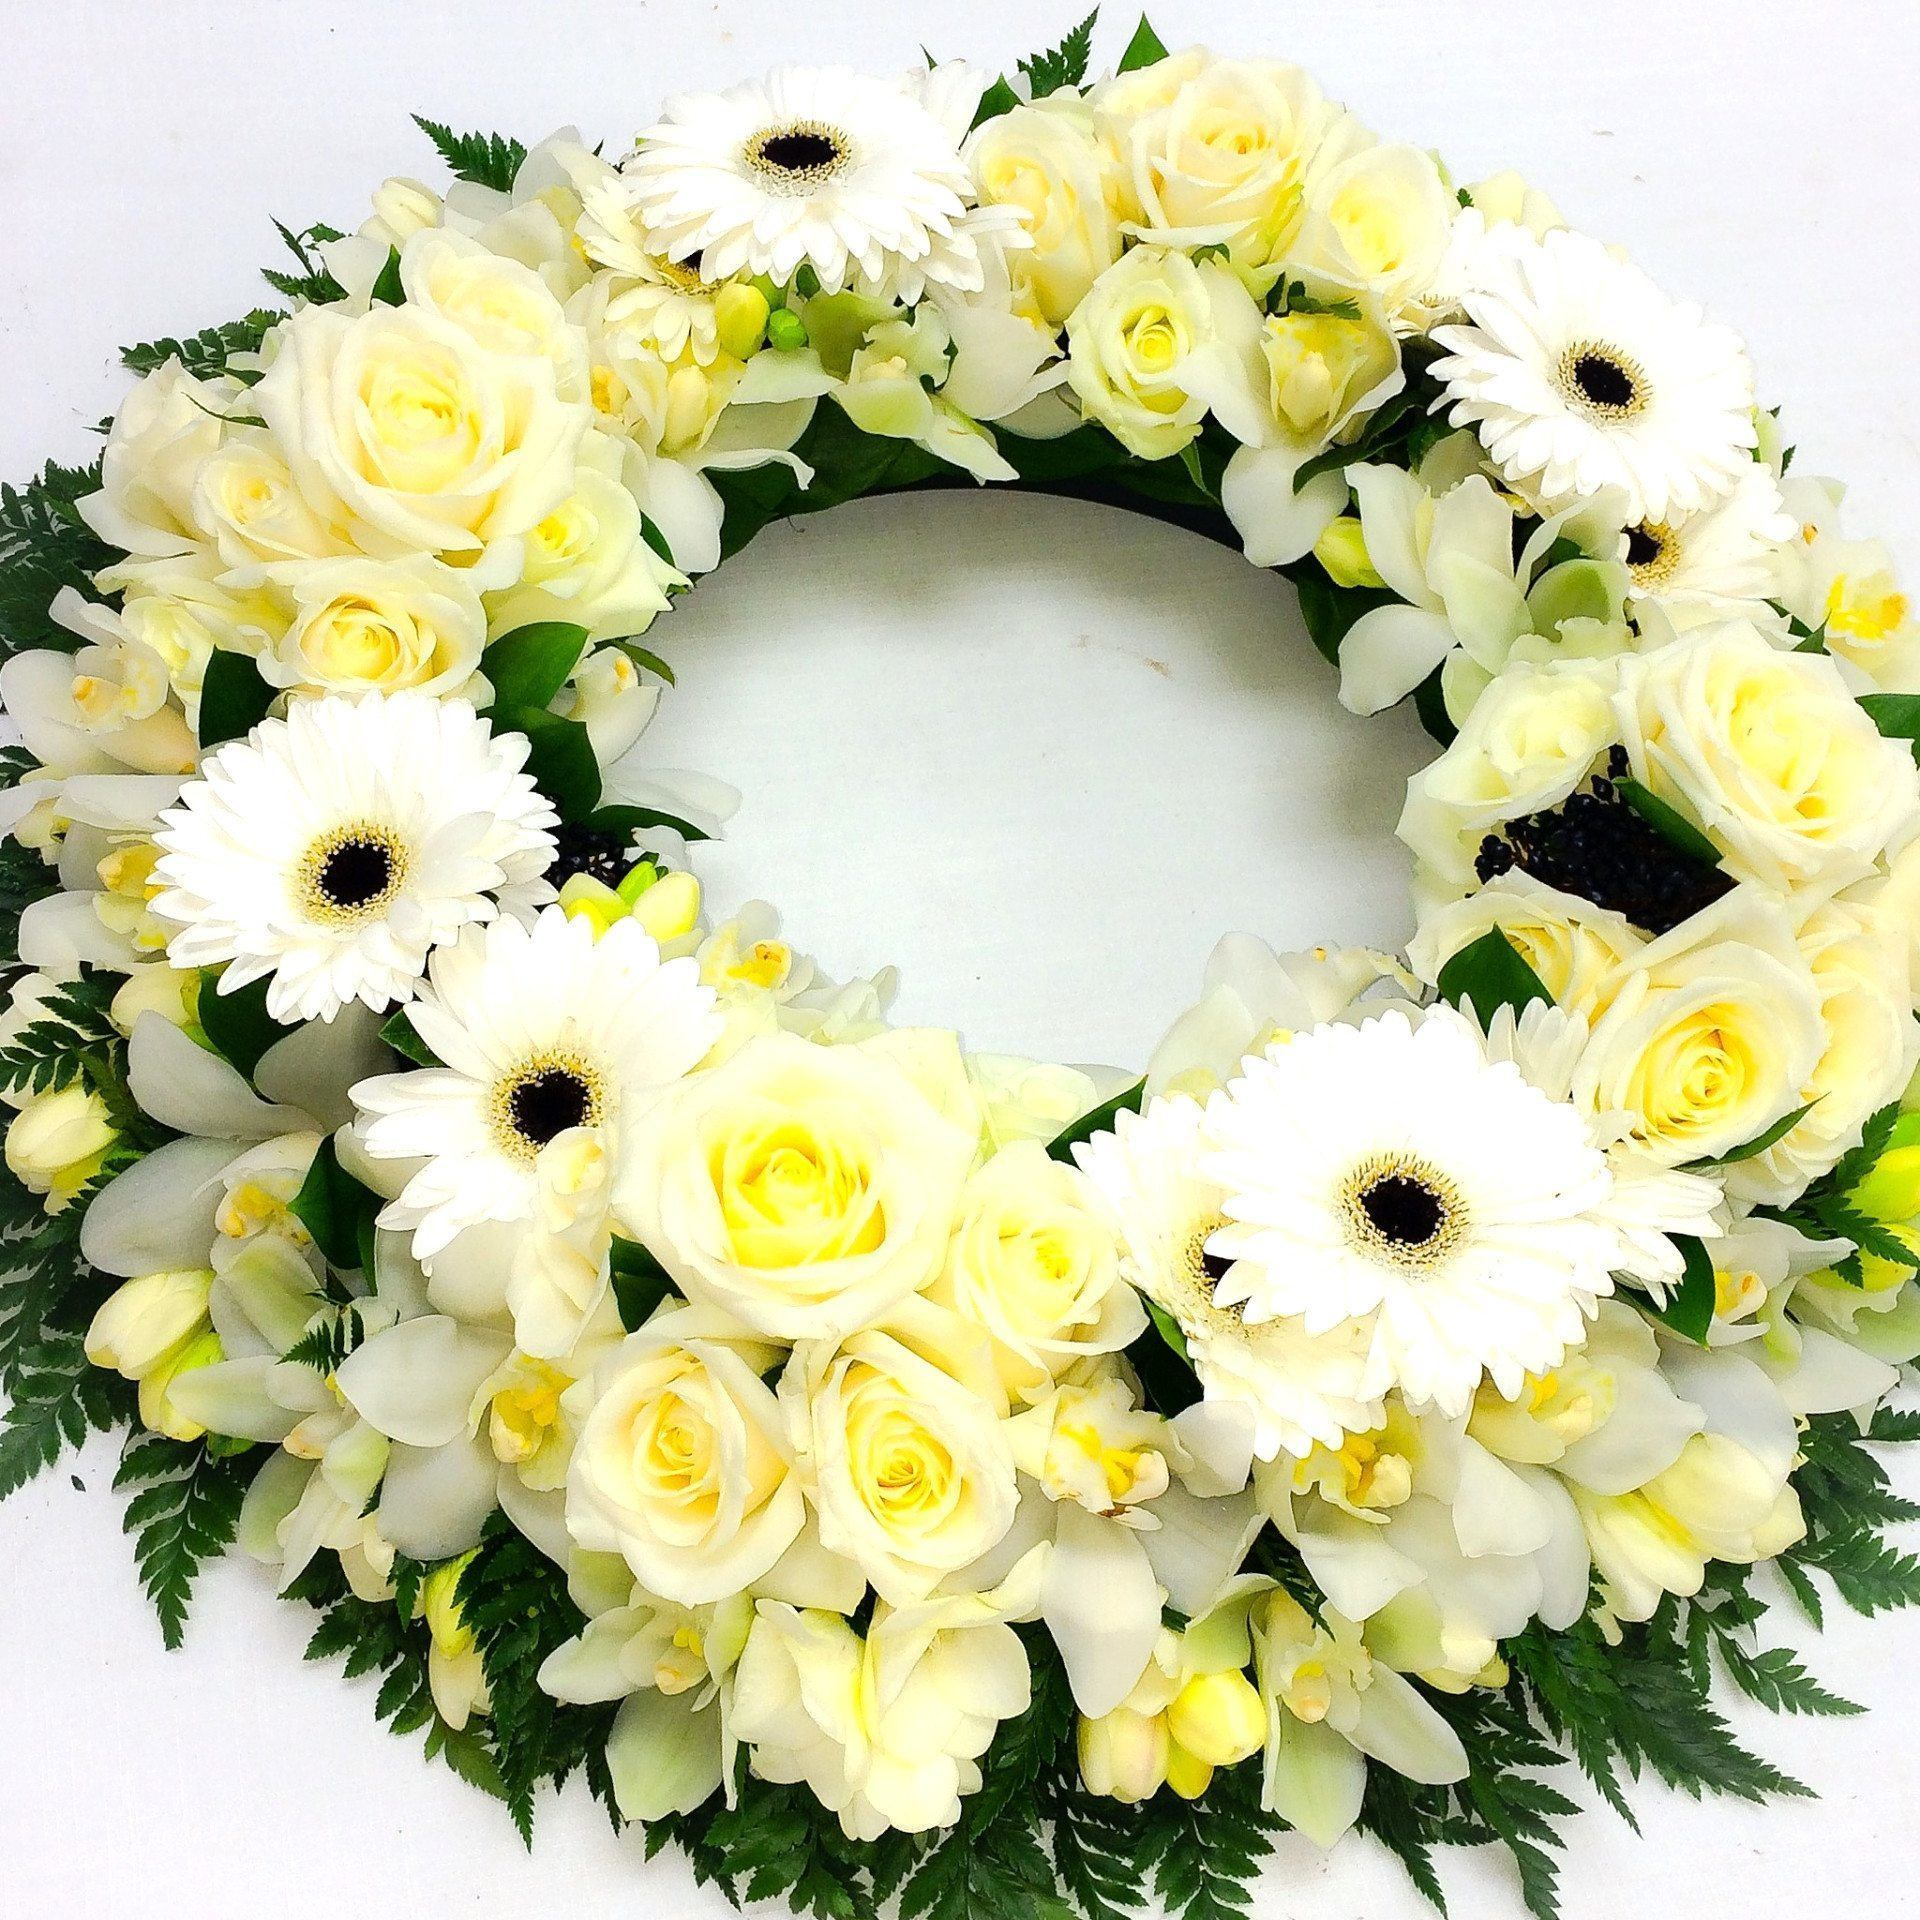 White sympathy wreath flowers delivery florists wellington nz wreath in white and green colours wreath flowers wellington new zealand flower shop florist izmirmasajfo